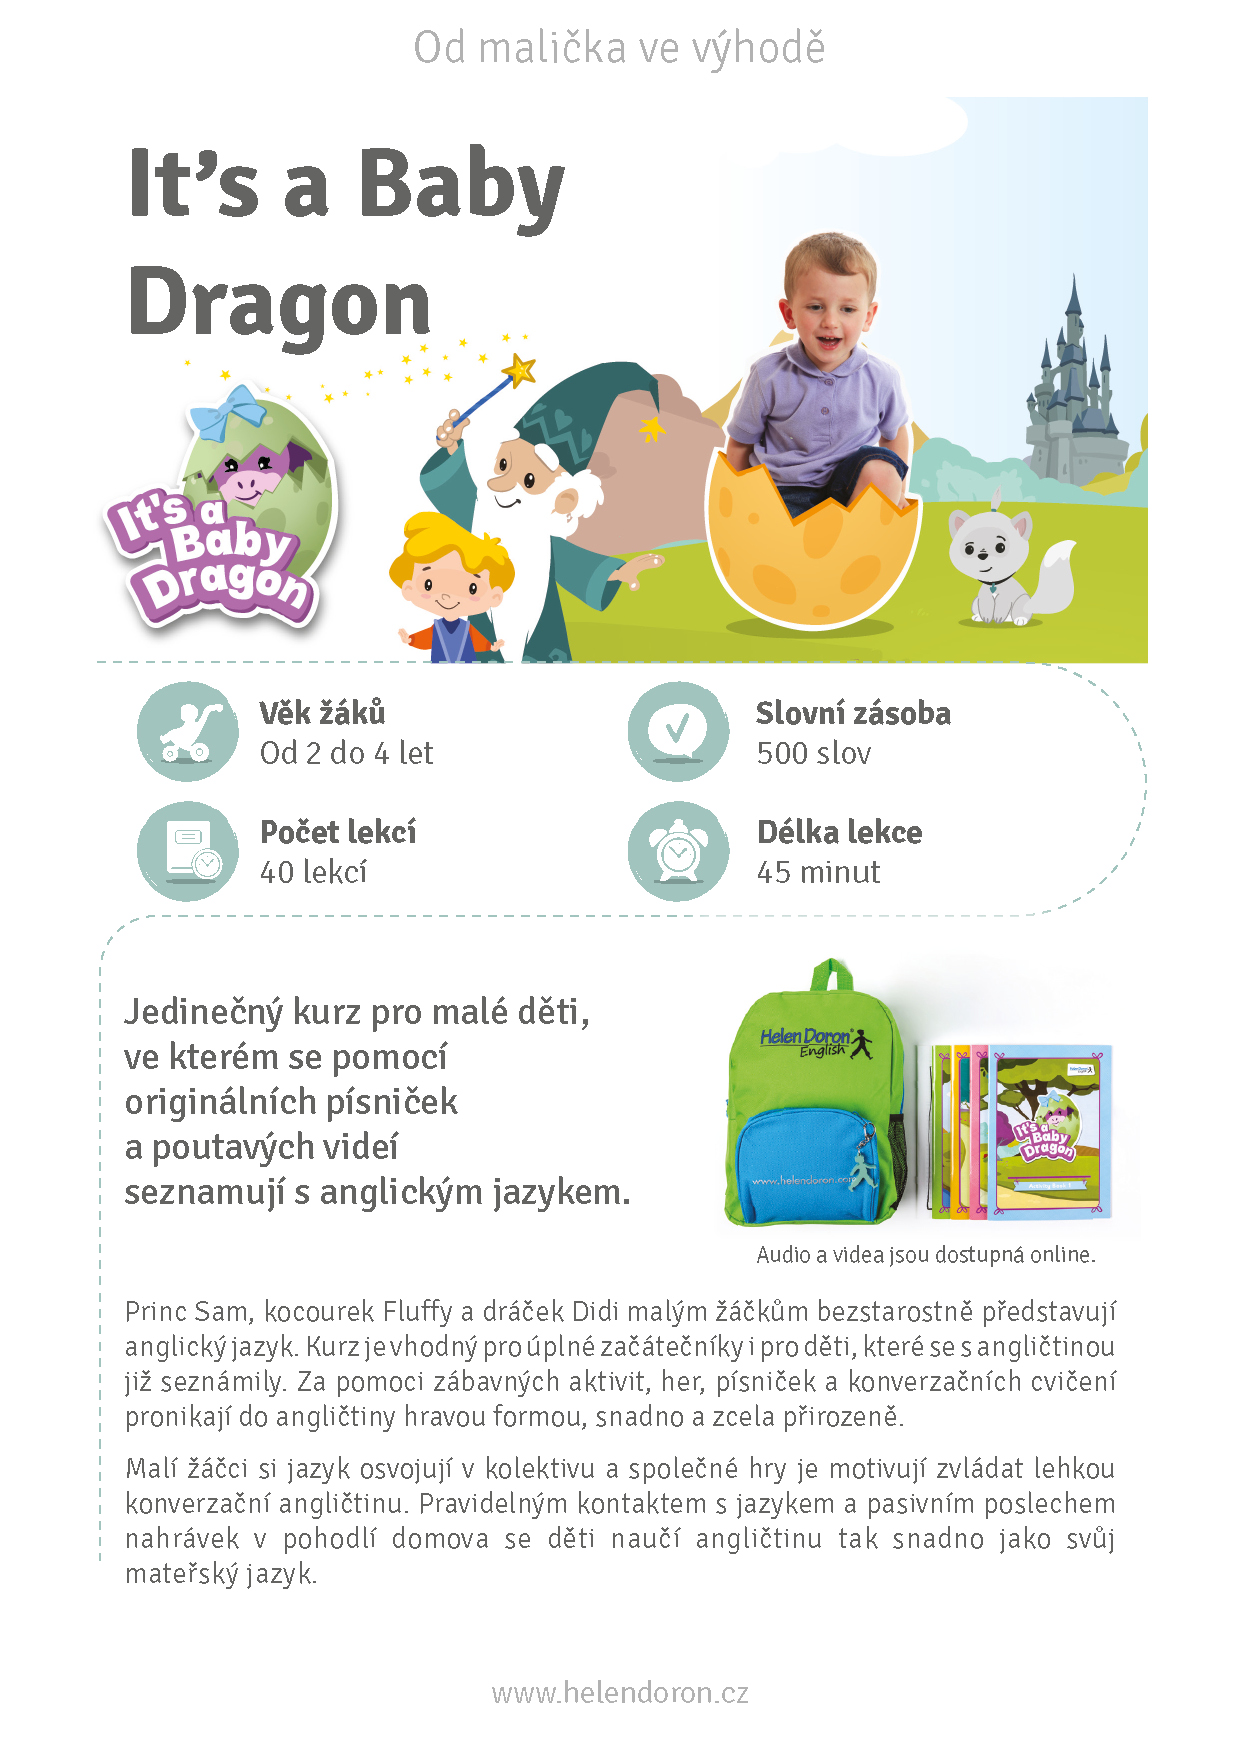 Download - It's a Baby Dragon (2 až 4 roky)